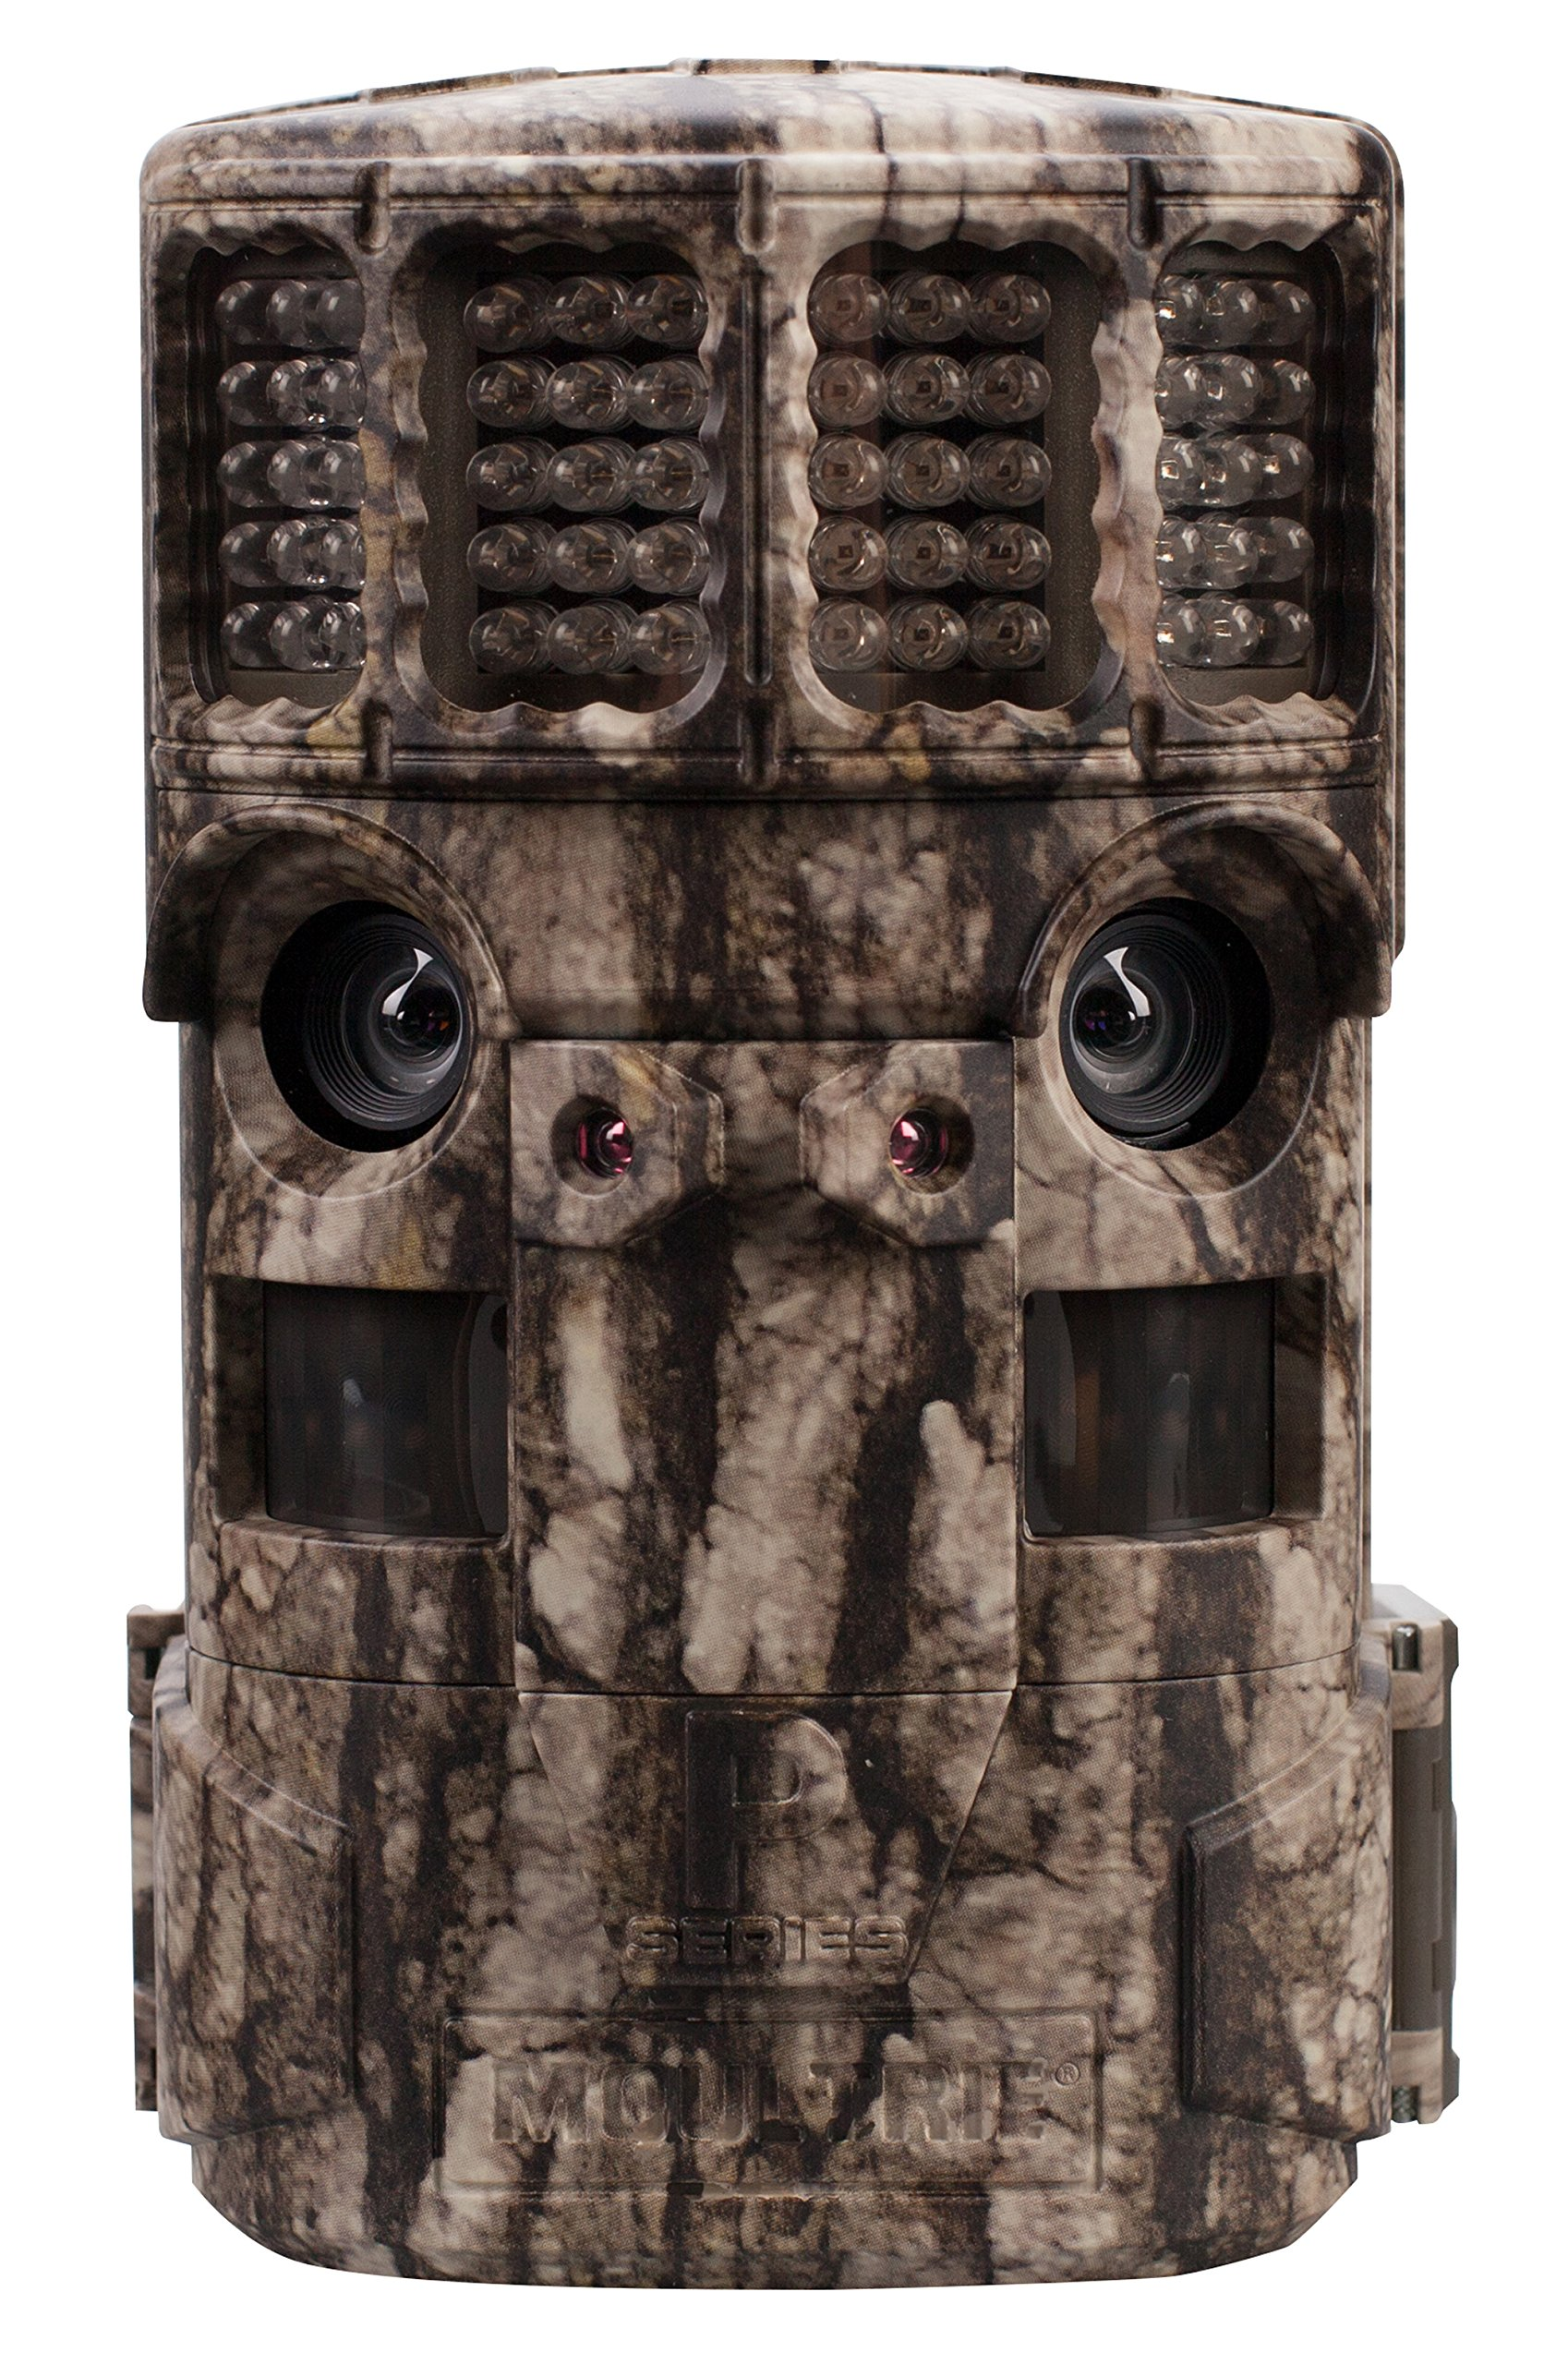 Moultrie P-120i Game Camera | P-Series | 21 MP | 0.5 S Trigger Speed | 1080p Video | Compatible with Moultrie Mobile (sold separately)